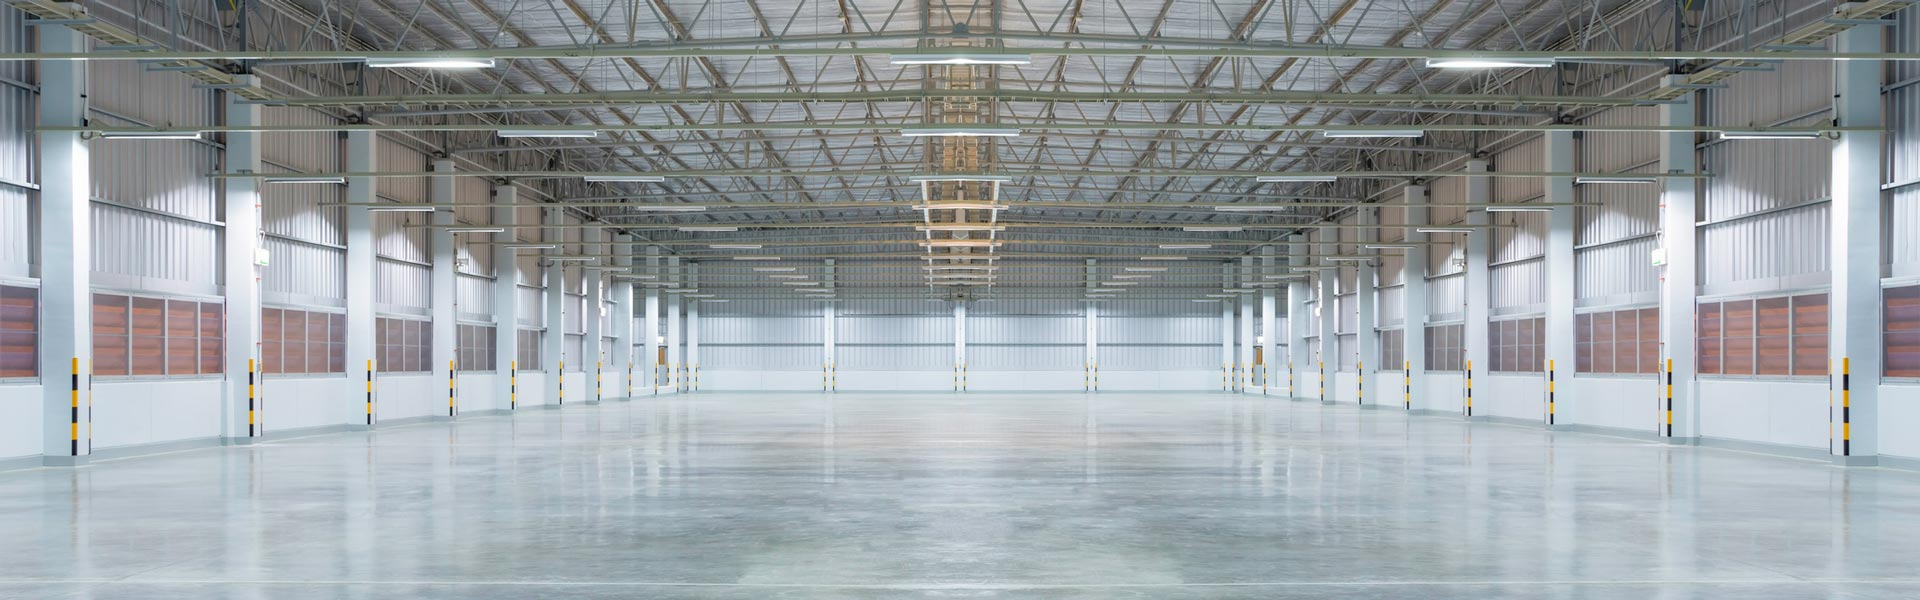 Warehouses, Loading Docks & Storage Facilities